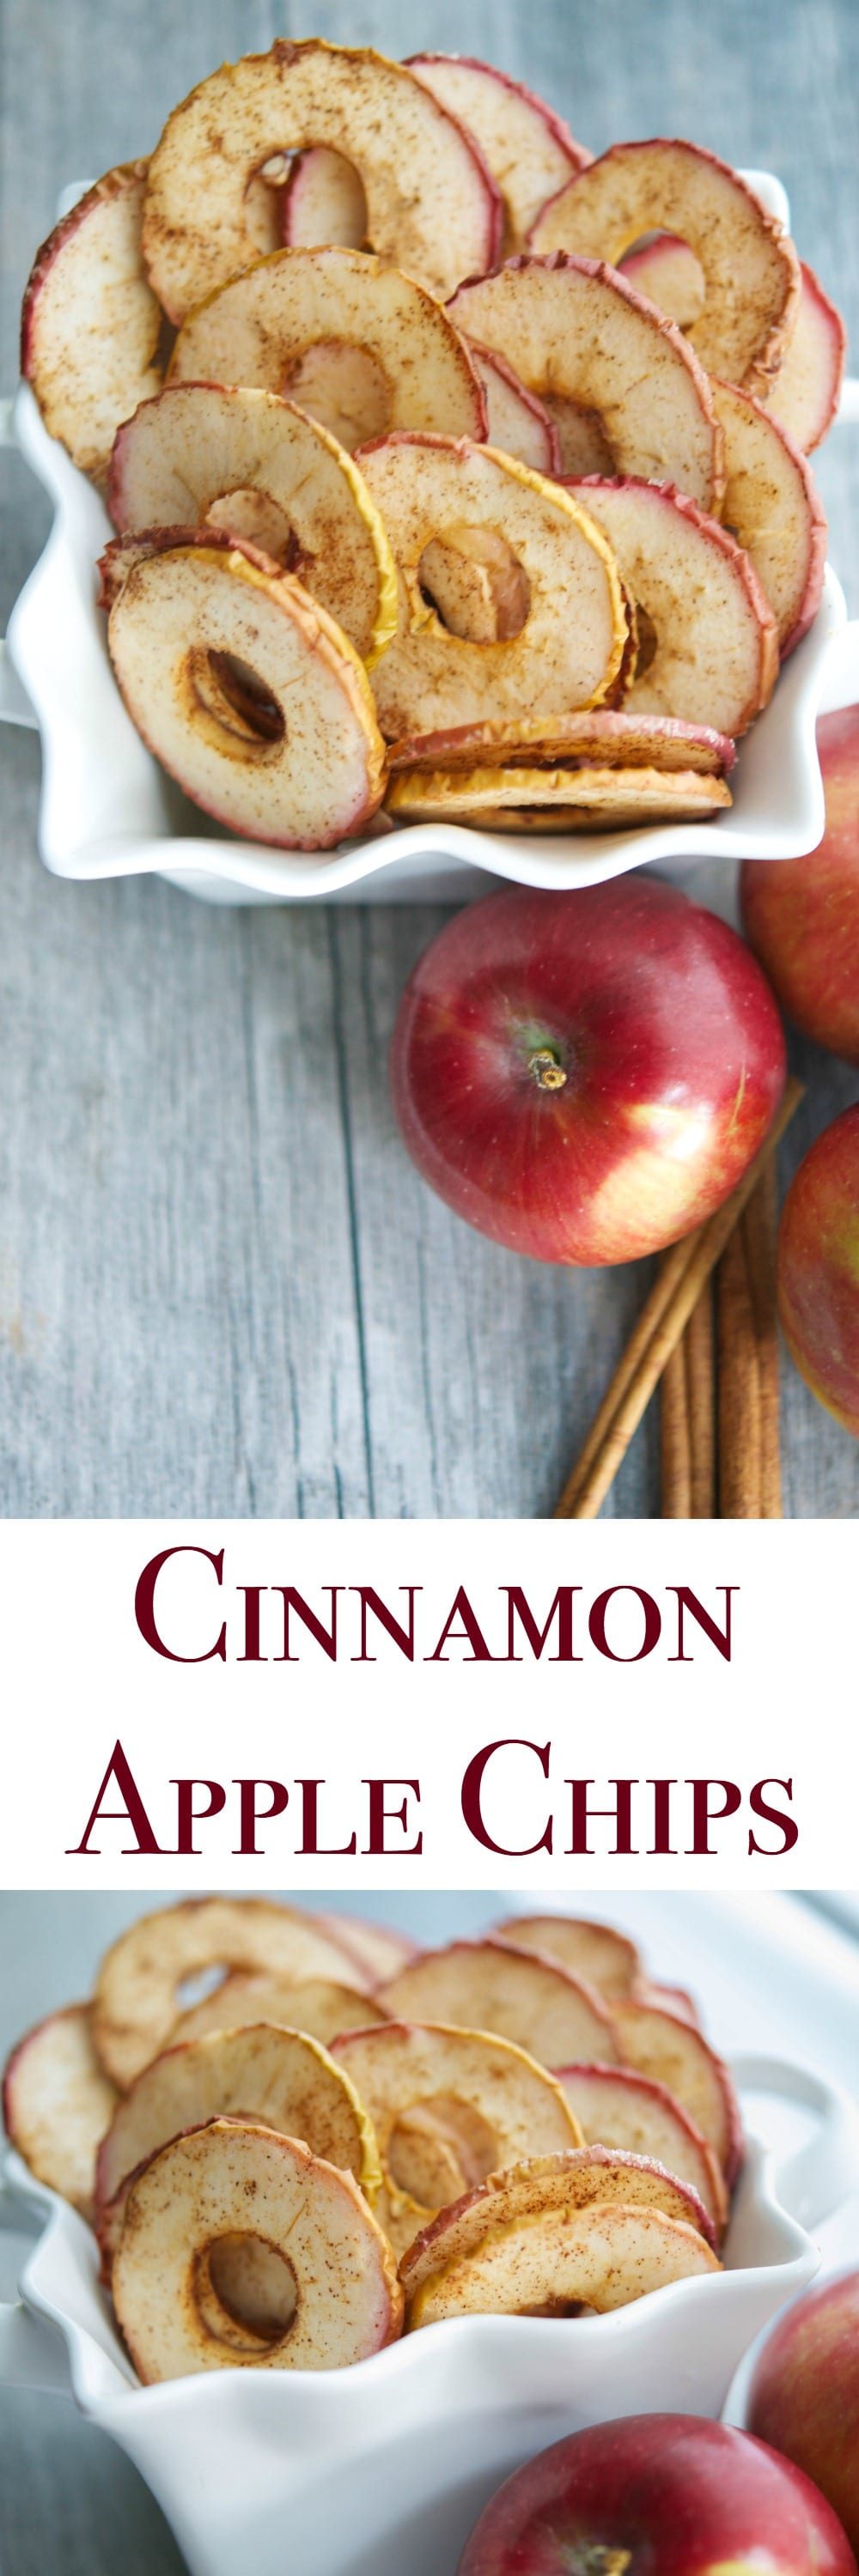 Cinnamon Apple Chips, made with a few simple ingredients like McIntosh apples, cinnamon and sugar are a healthy snack your whole family will love.